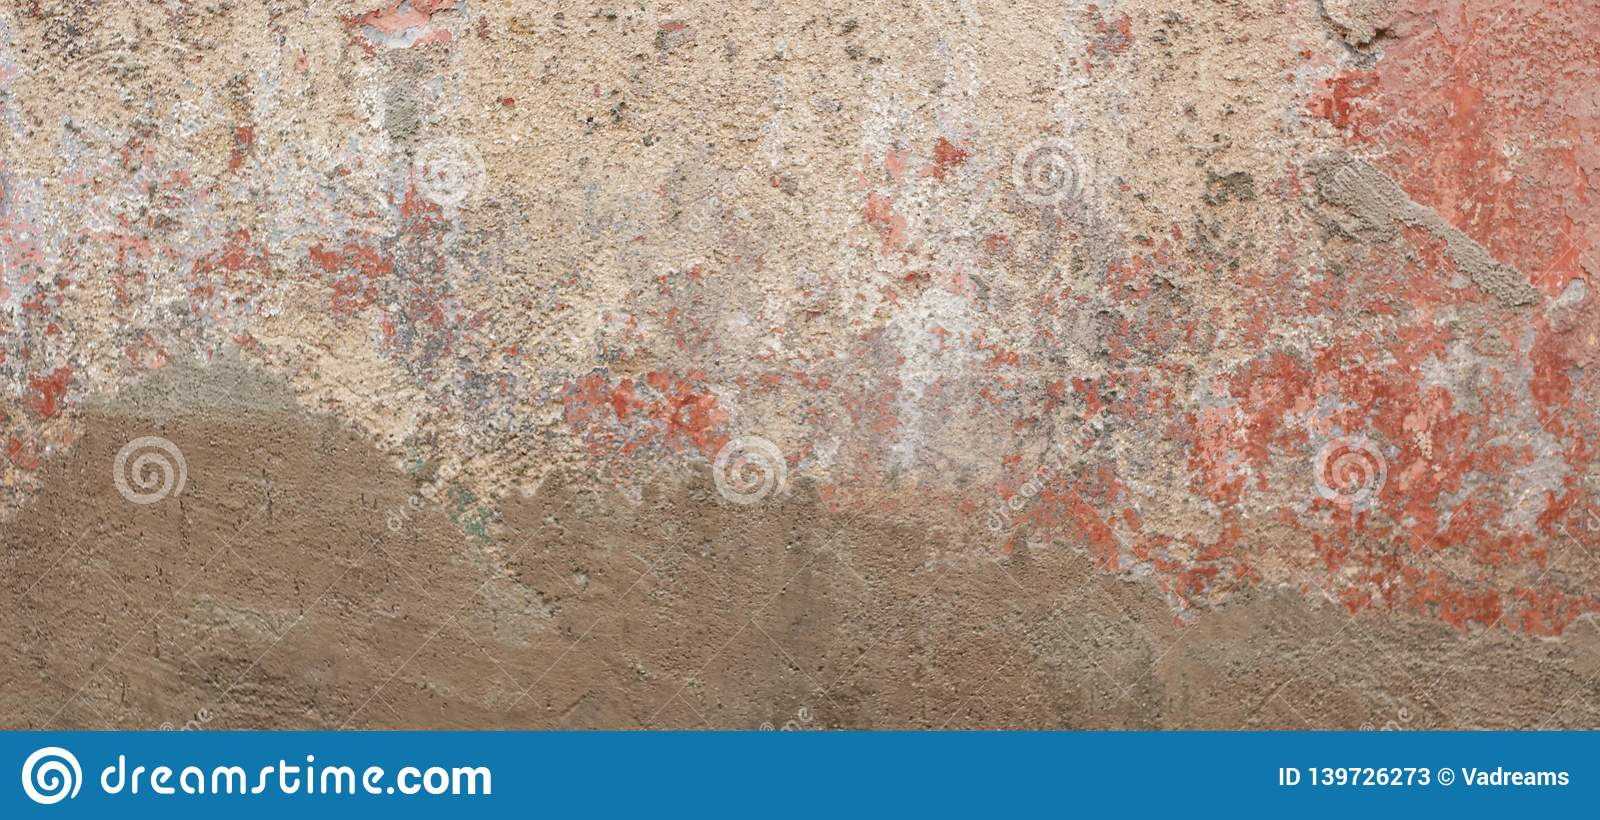 Old cracked weathered shabby red painted and new plastered wall banner background